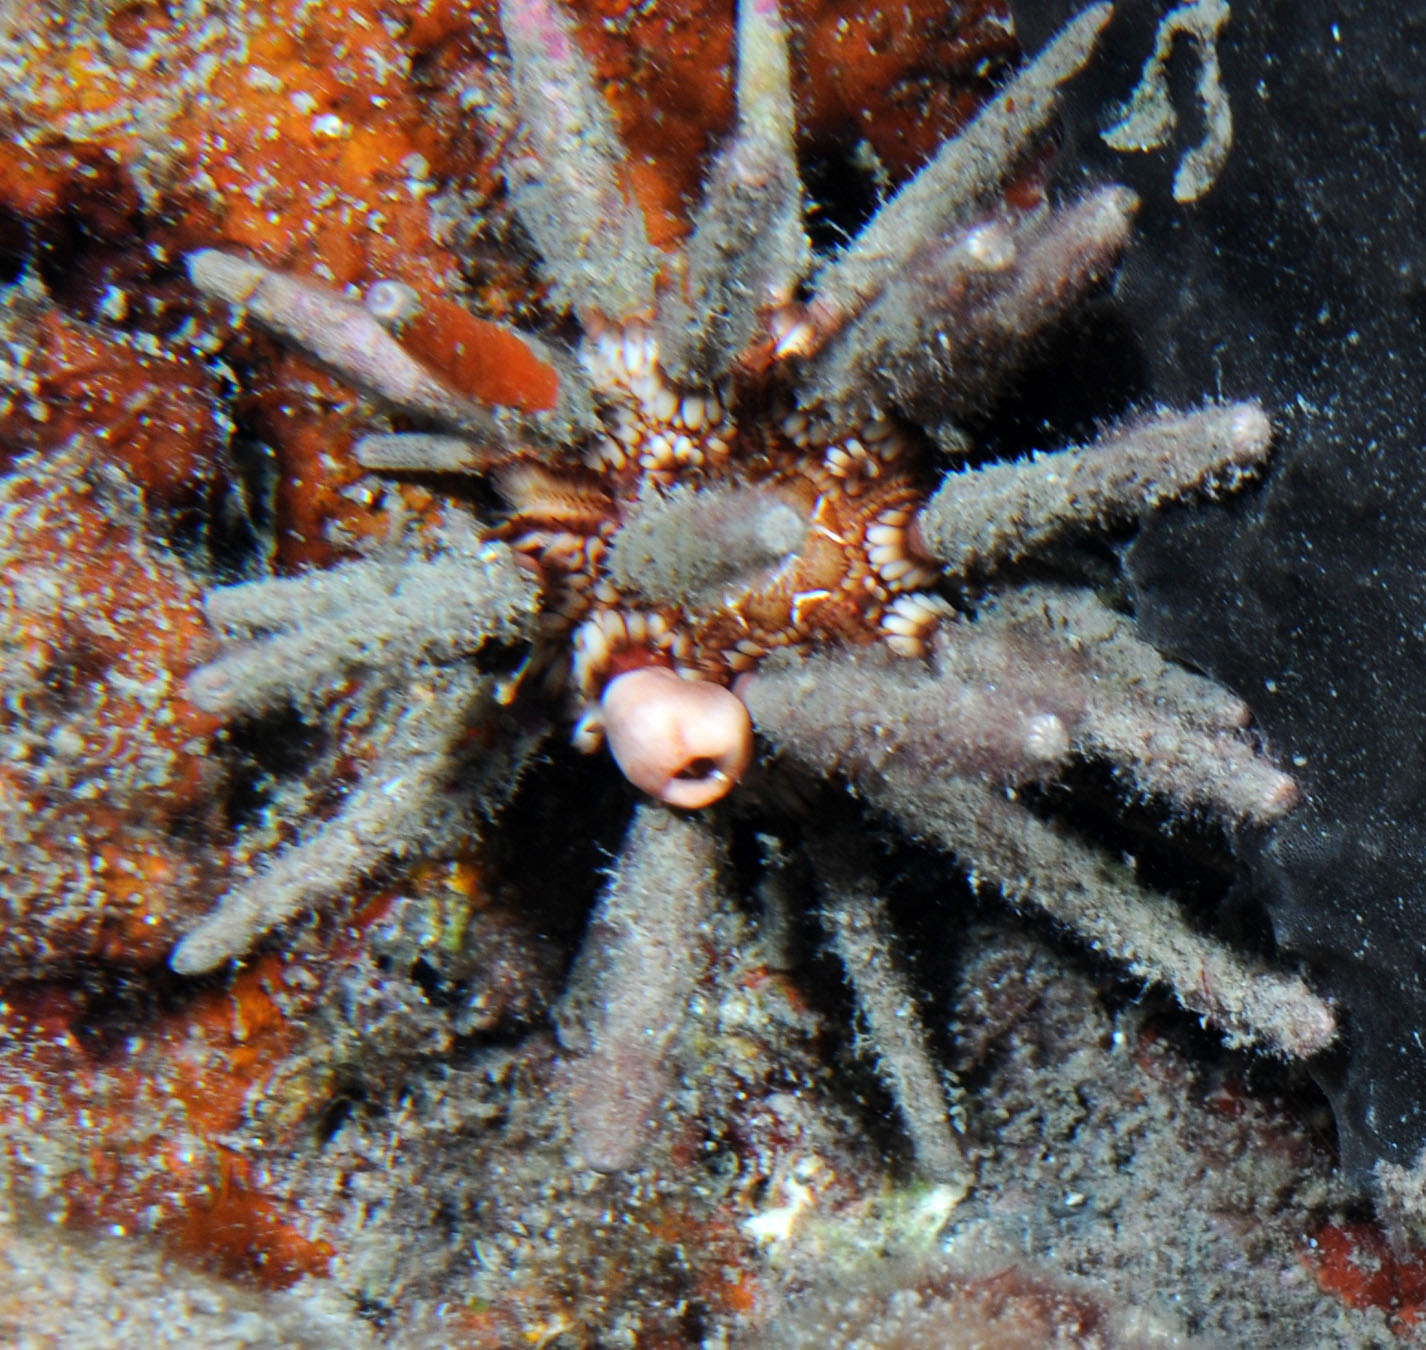 Green sea urchin facts viewing gallery